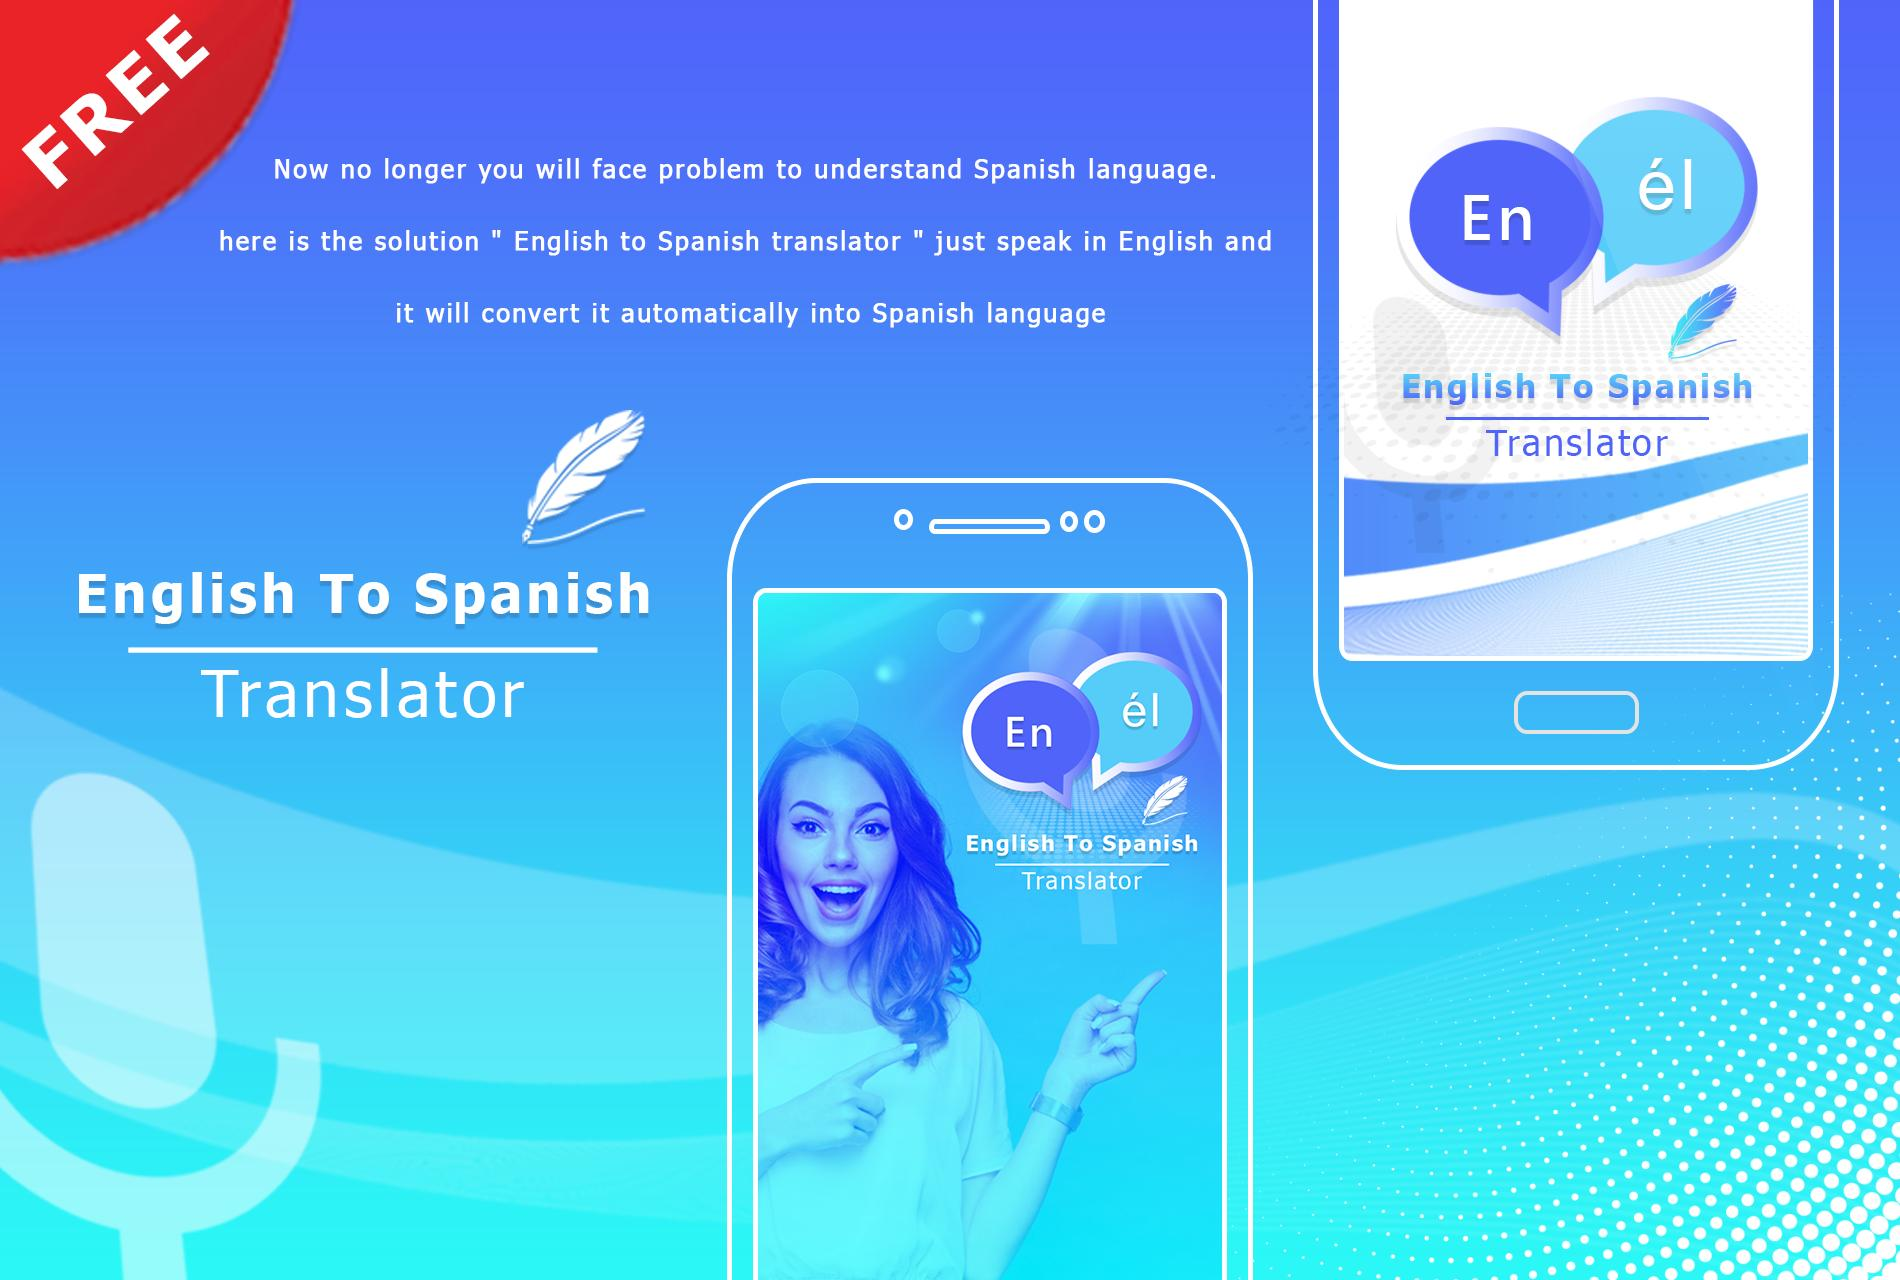 Free english-spanish translator full windows 7 screenshot.